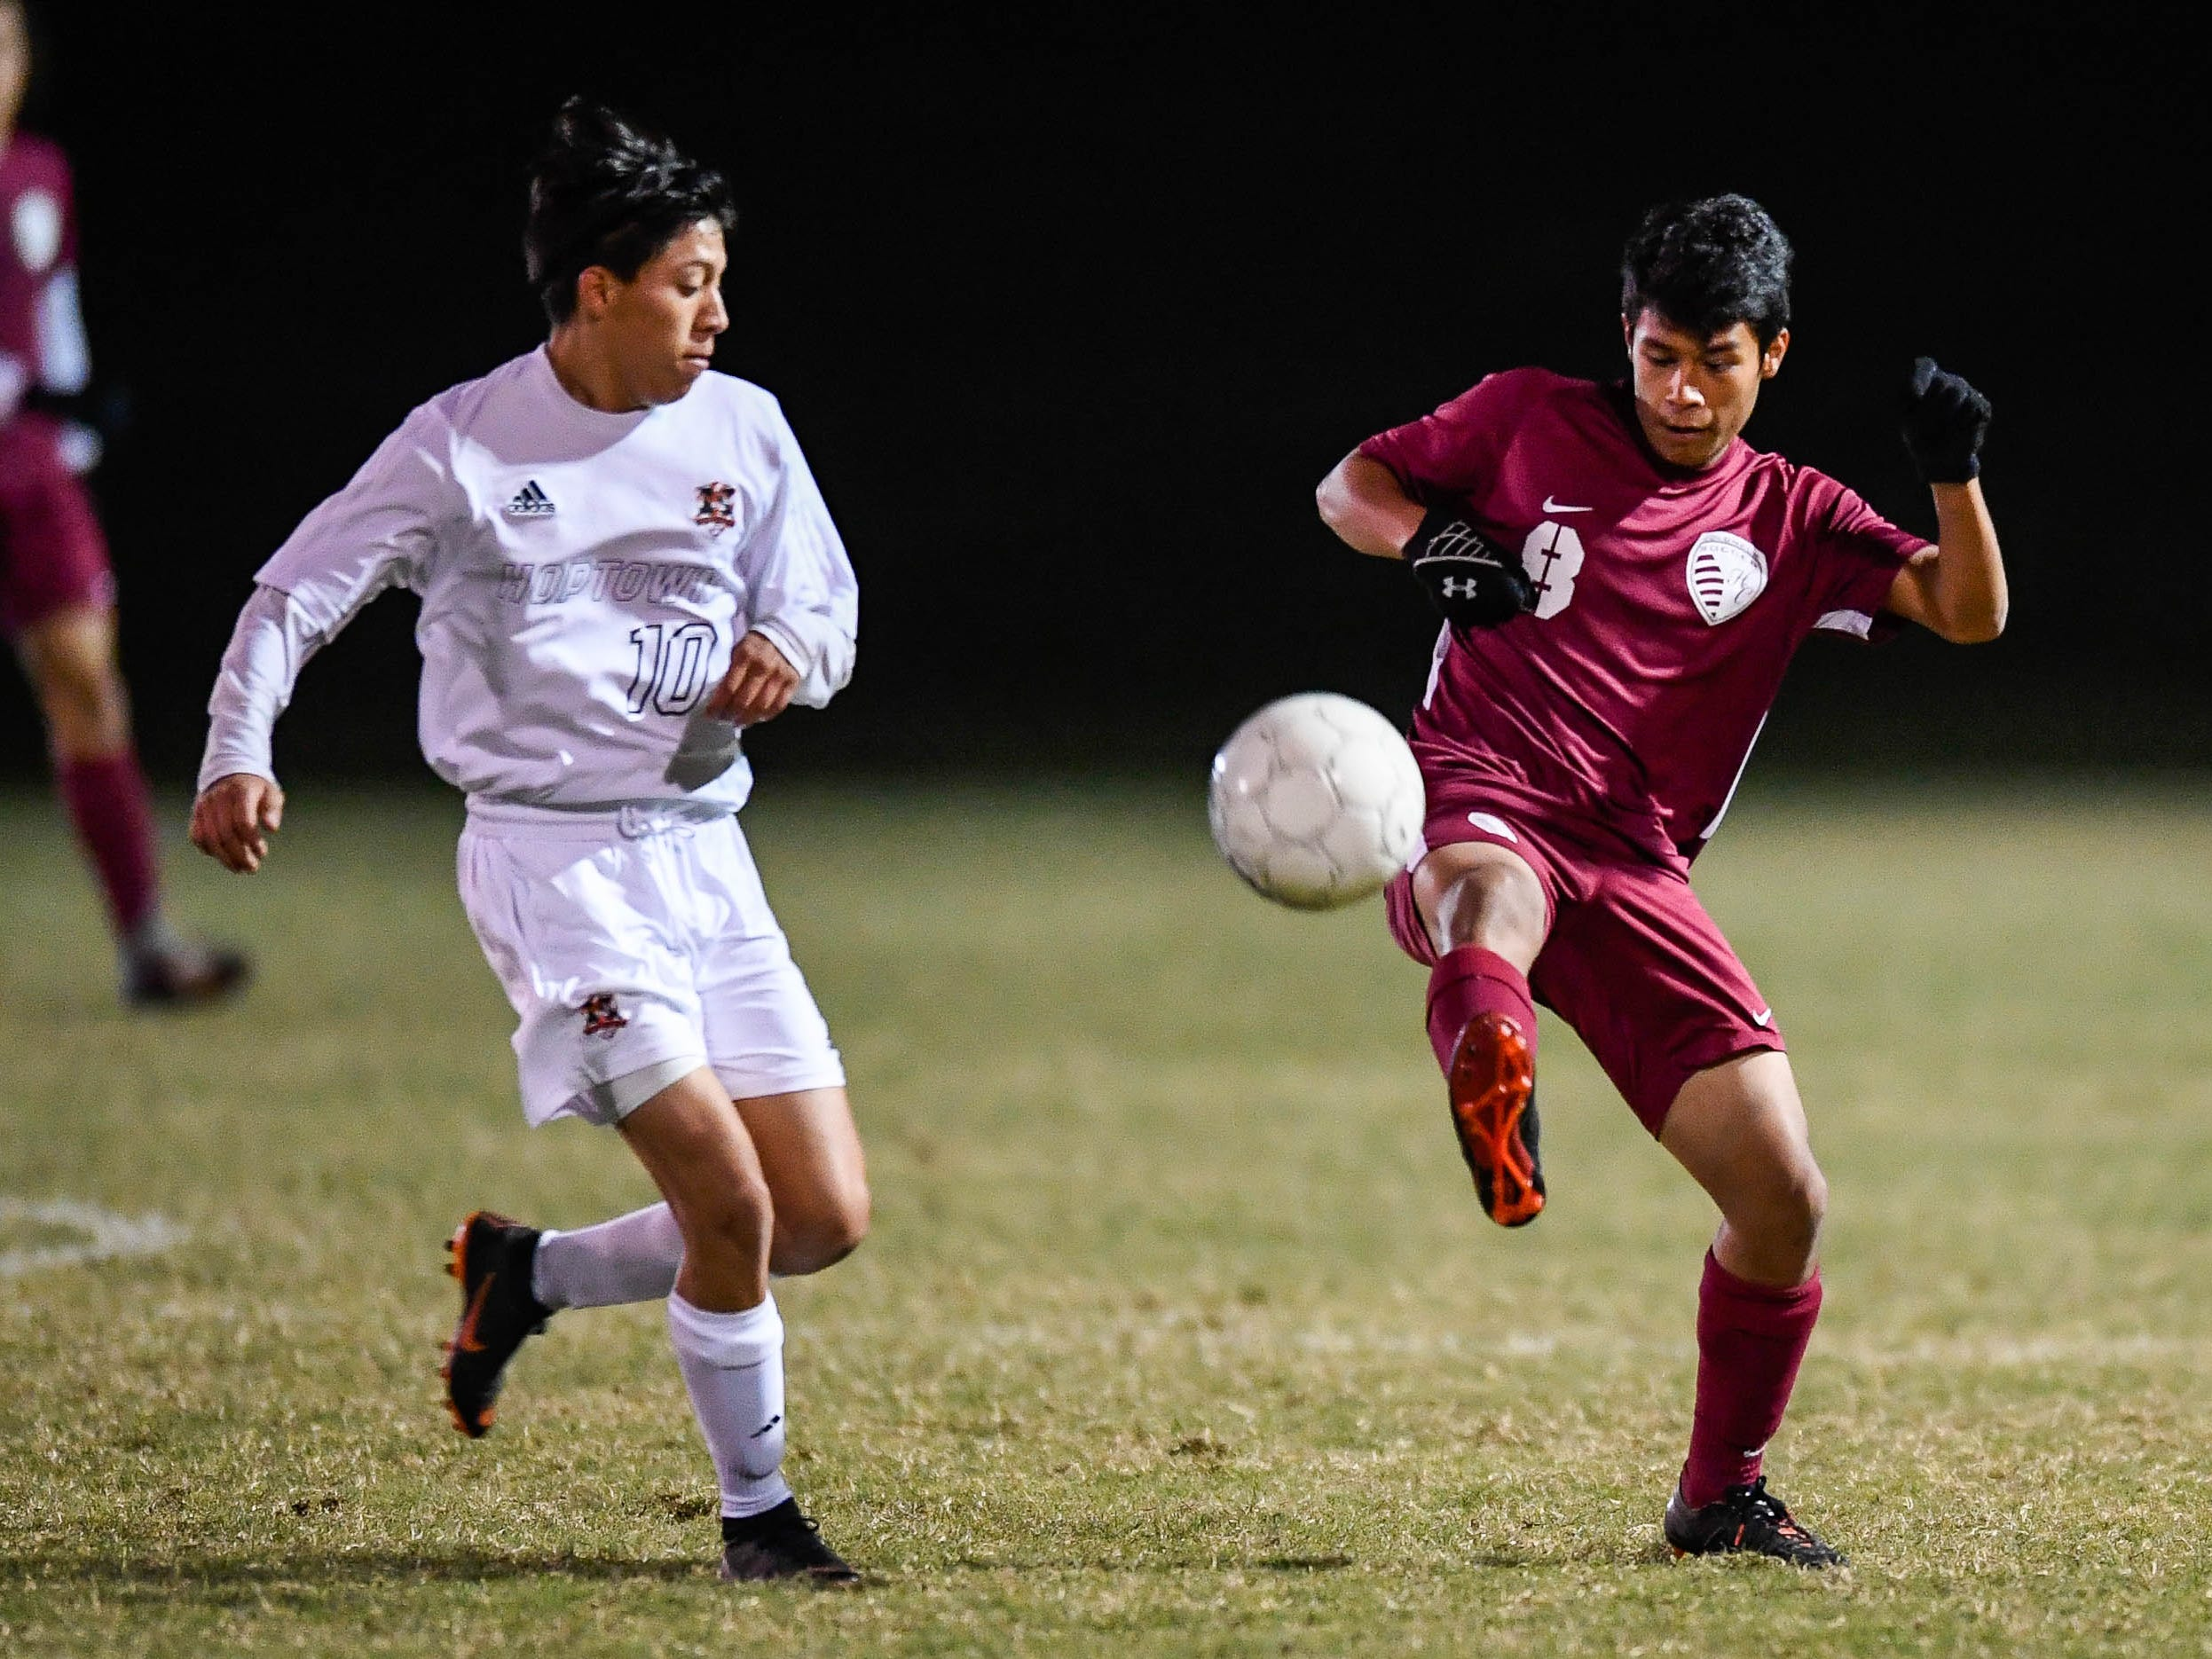 Hopkinsville's Edwar Acosta (10) and Henderson County's Cooper Wilson (9) as the Henderson County Colonels play the Hopkinsville Tigers in the regional final at Madisonville-North Hopkins High School Thursday, October 18, 2018.